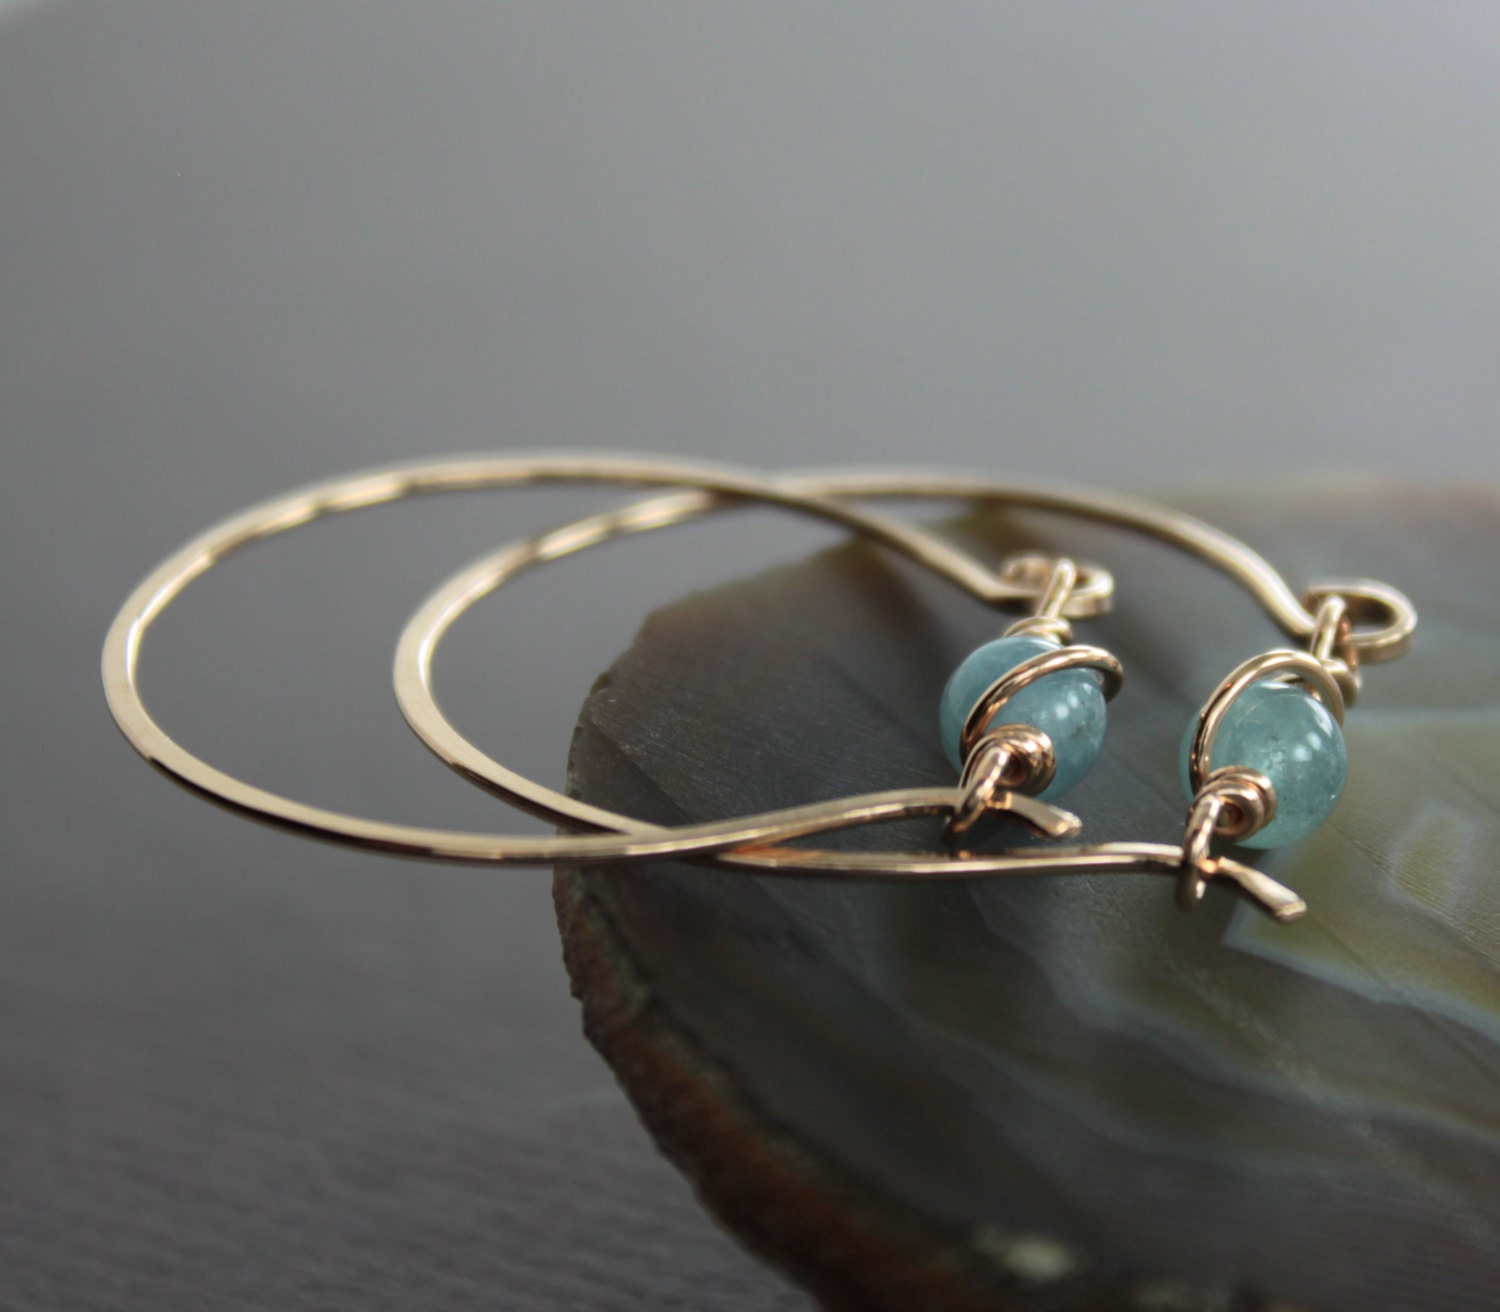 gold tone bronze hoop earrings with unique aquamarine